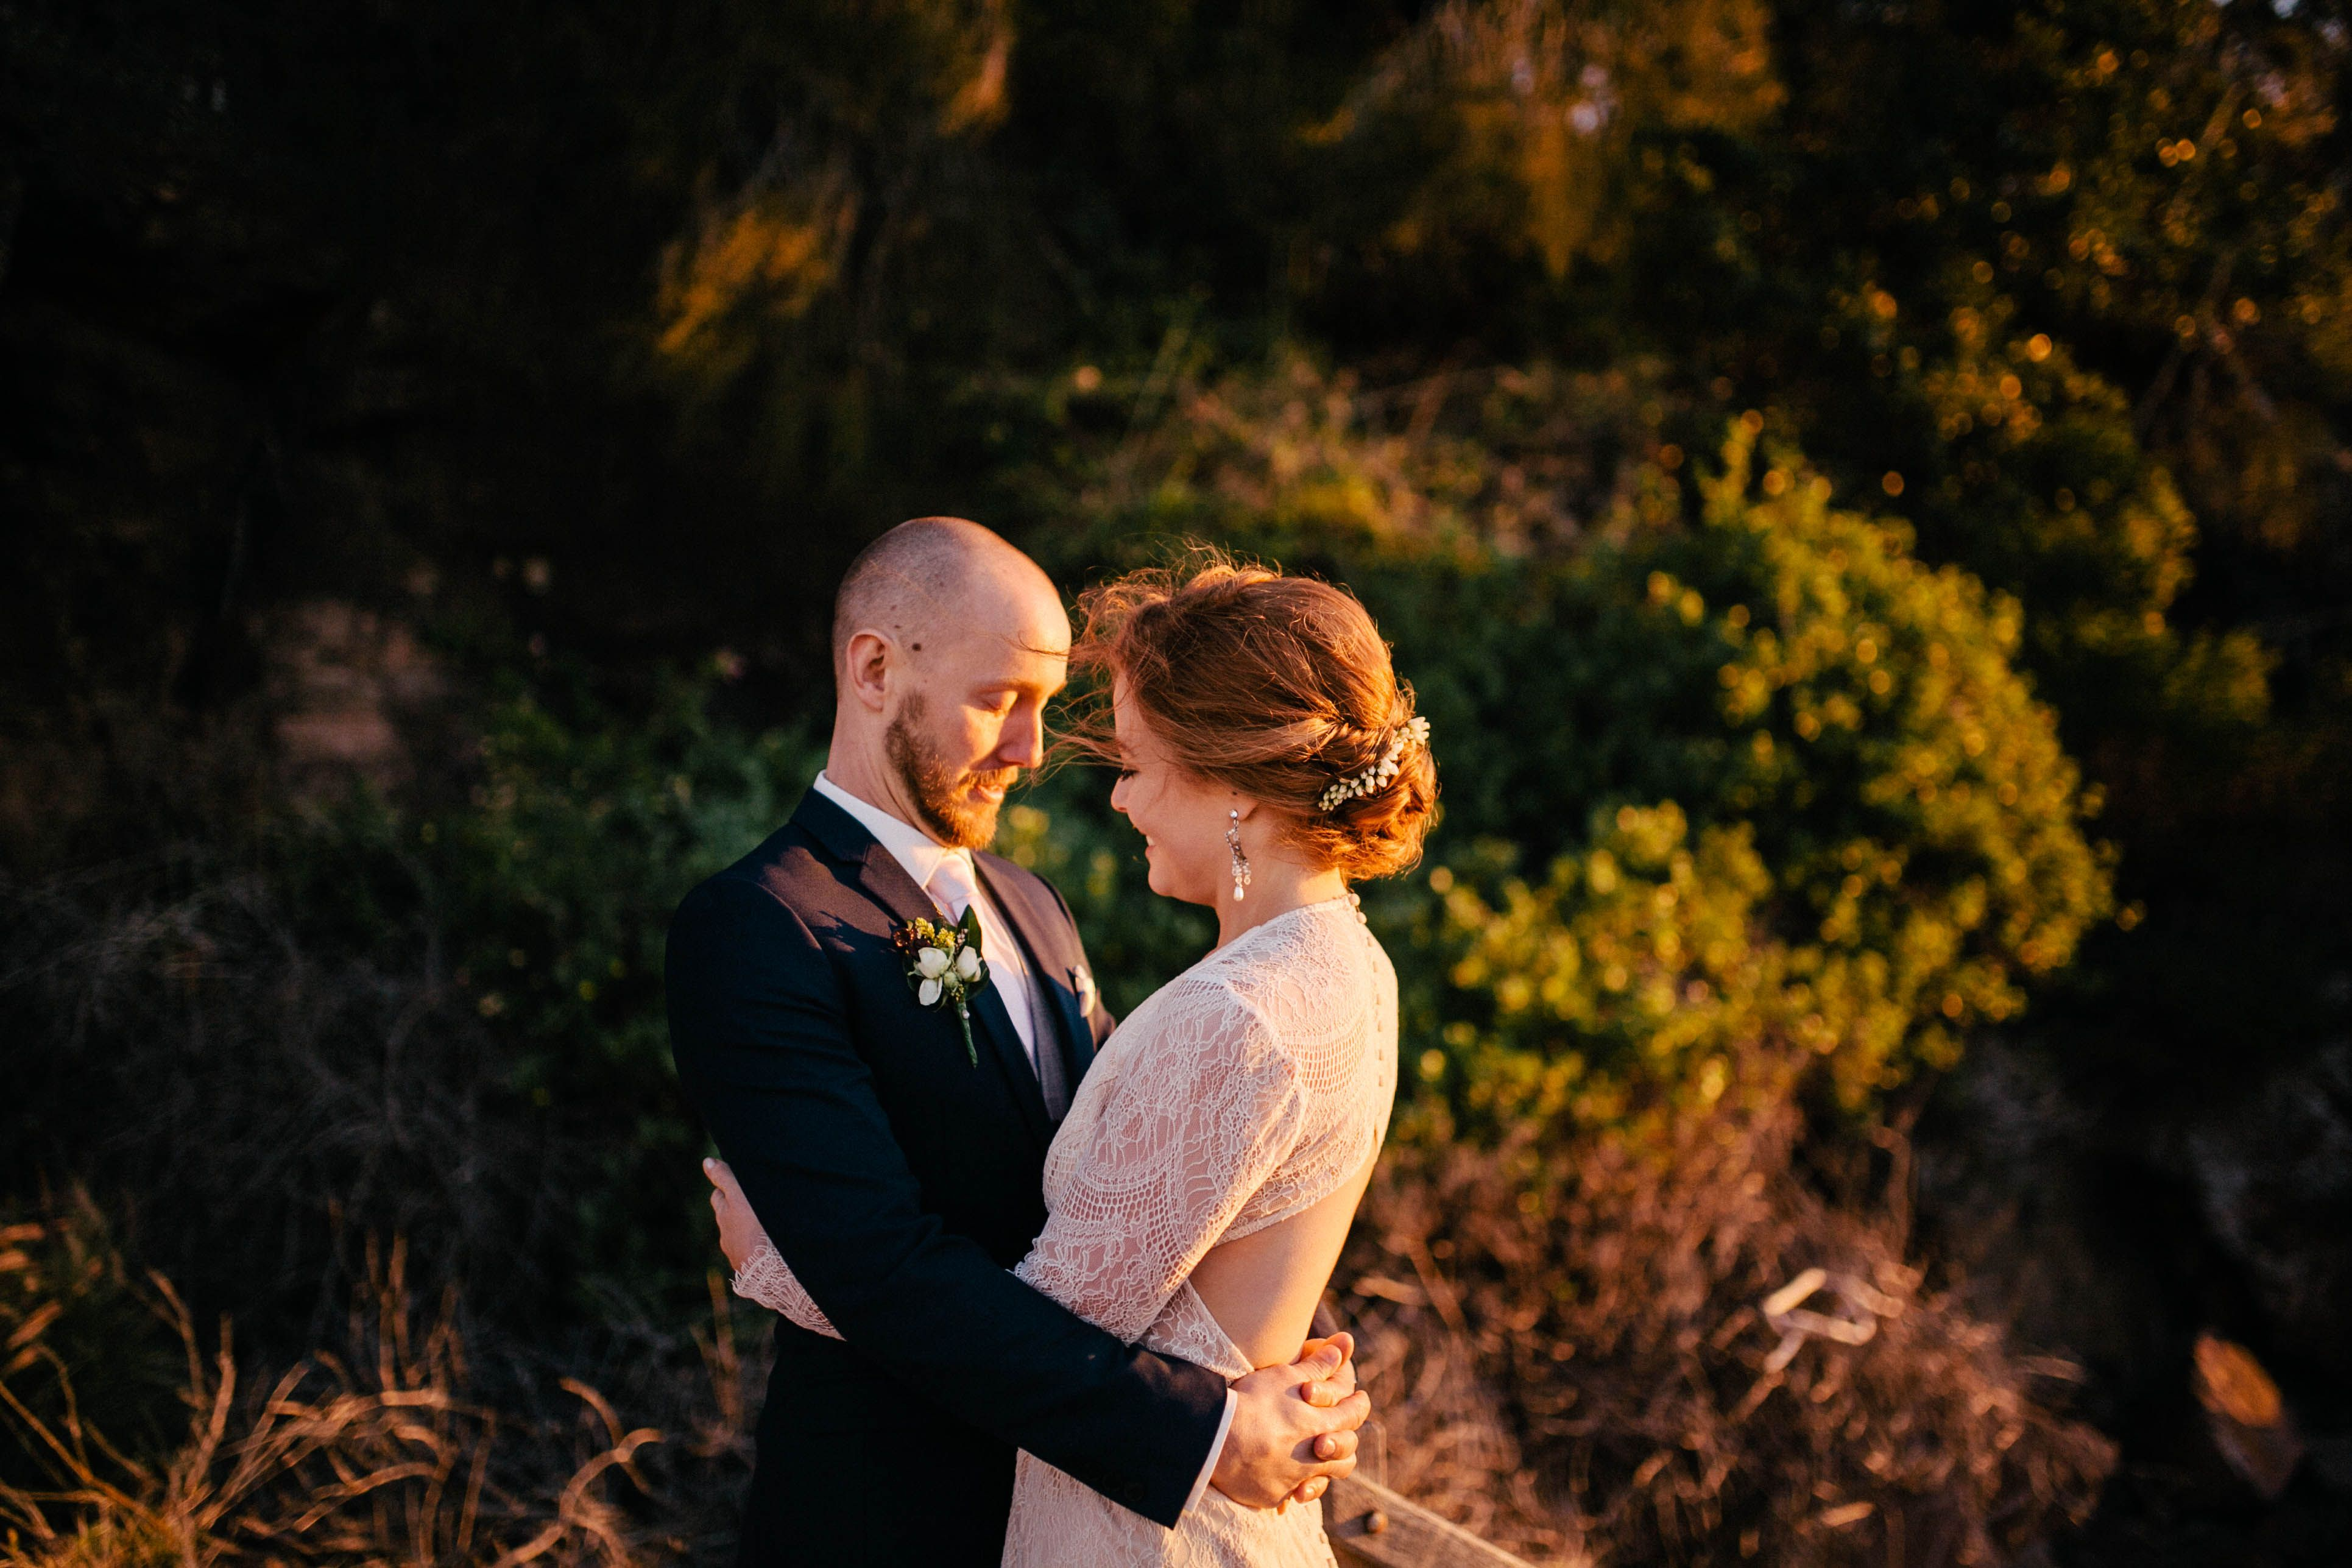 Odette + Ricky  August, 2016 Anchorage Port Stephens (Photography by Hold Tight Photography - https://www.facebook.com/holdtightphotographicservices/)